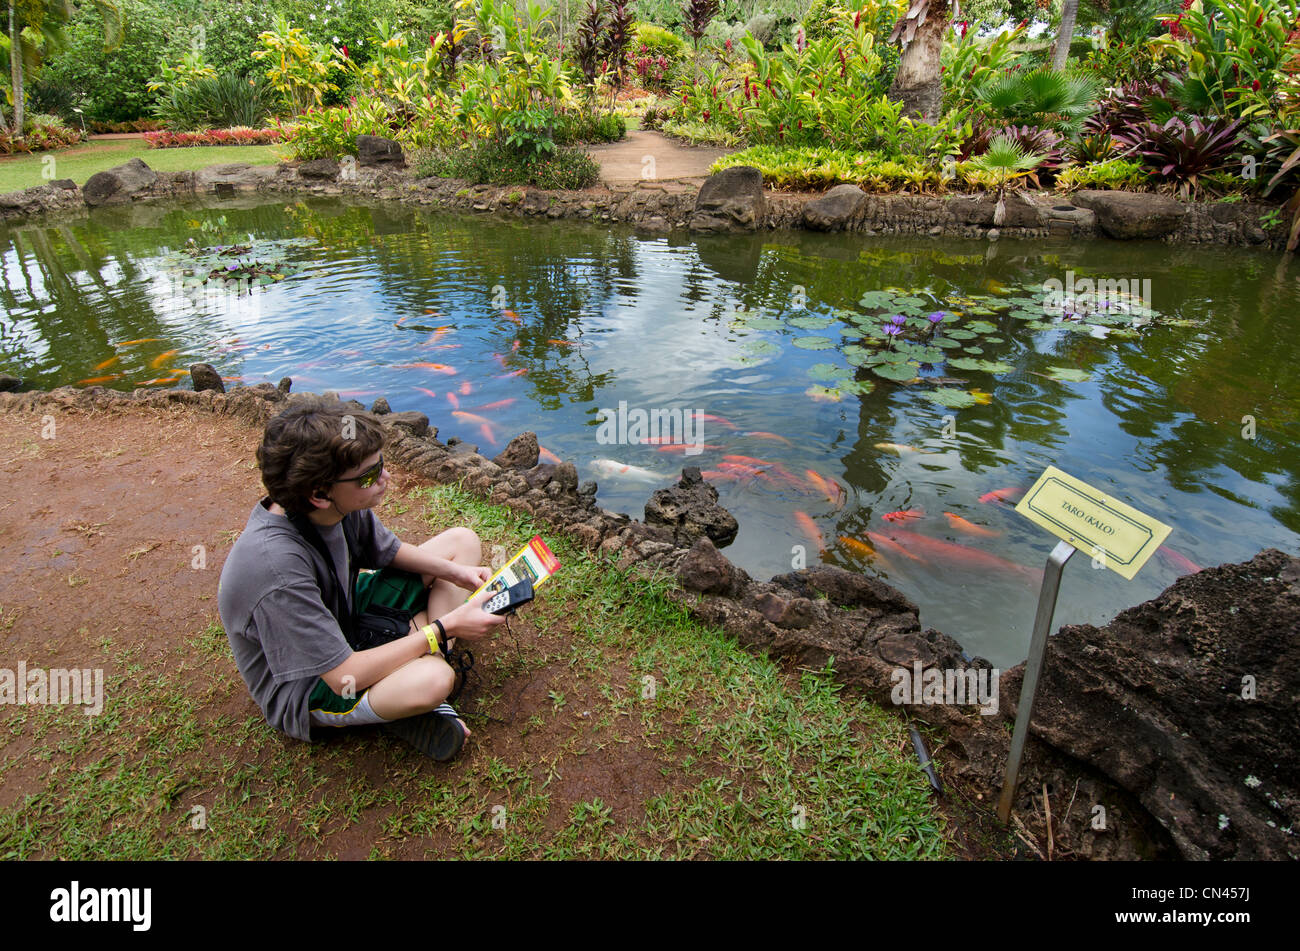 Boy Using The Audio Tour At The Plantation Garden Tour At The Dole Stock Photo Alamy